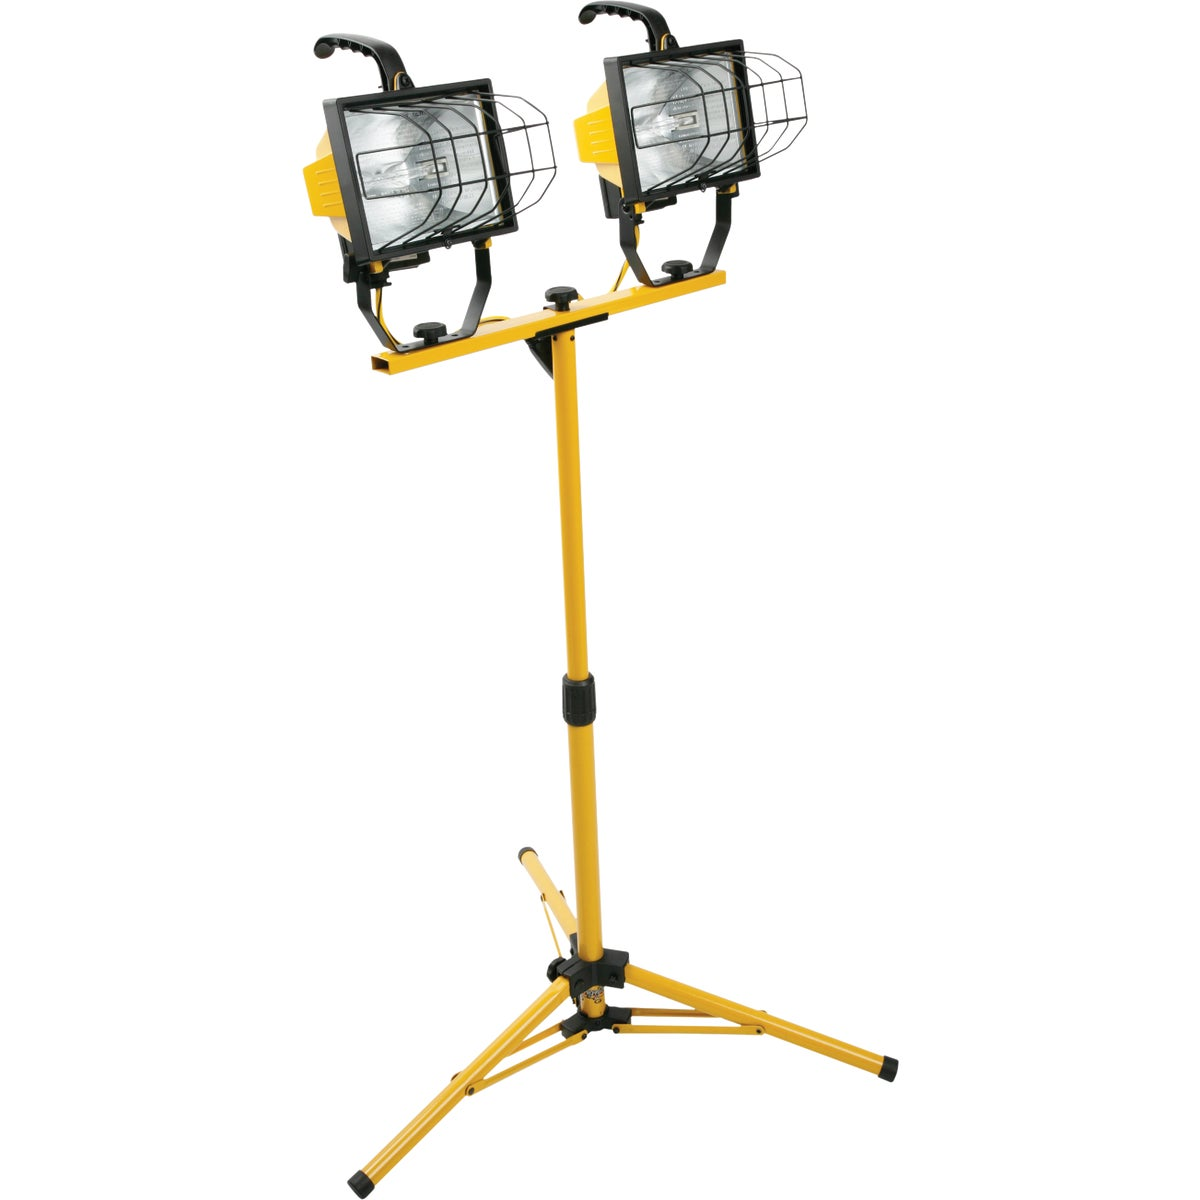 PORTABLE HALGN WORKLIGHT - L-13 by Woods Wire Coleman